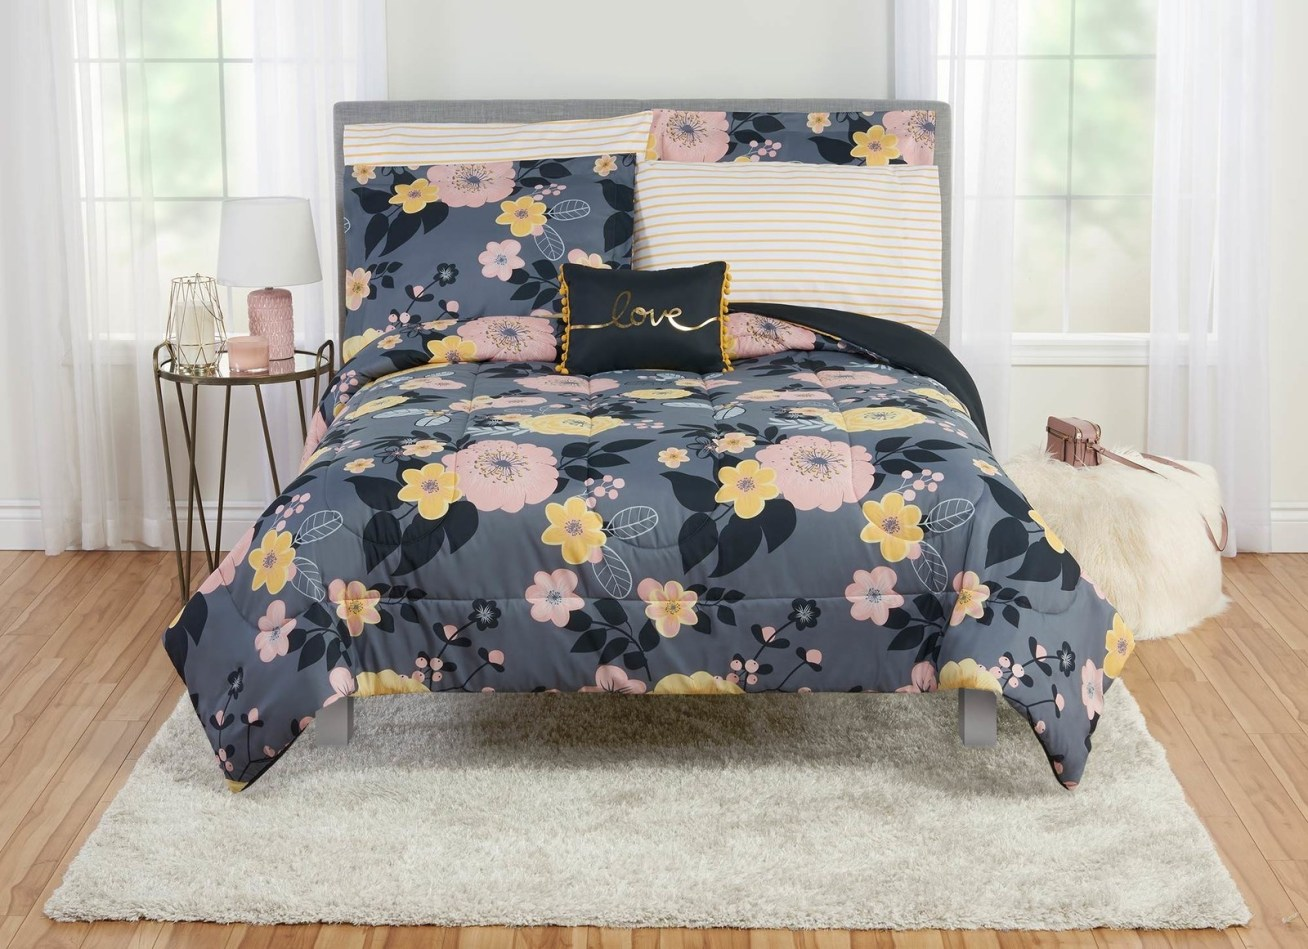 Includes a comforter, sheet set, shams, and a throw pillow (items vary based on the size of the set).Price: .36+ (available in four sizes)